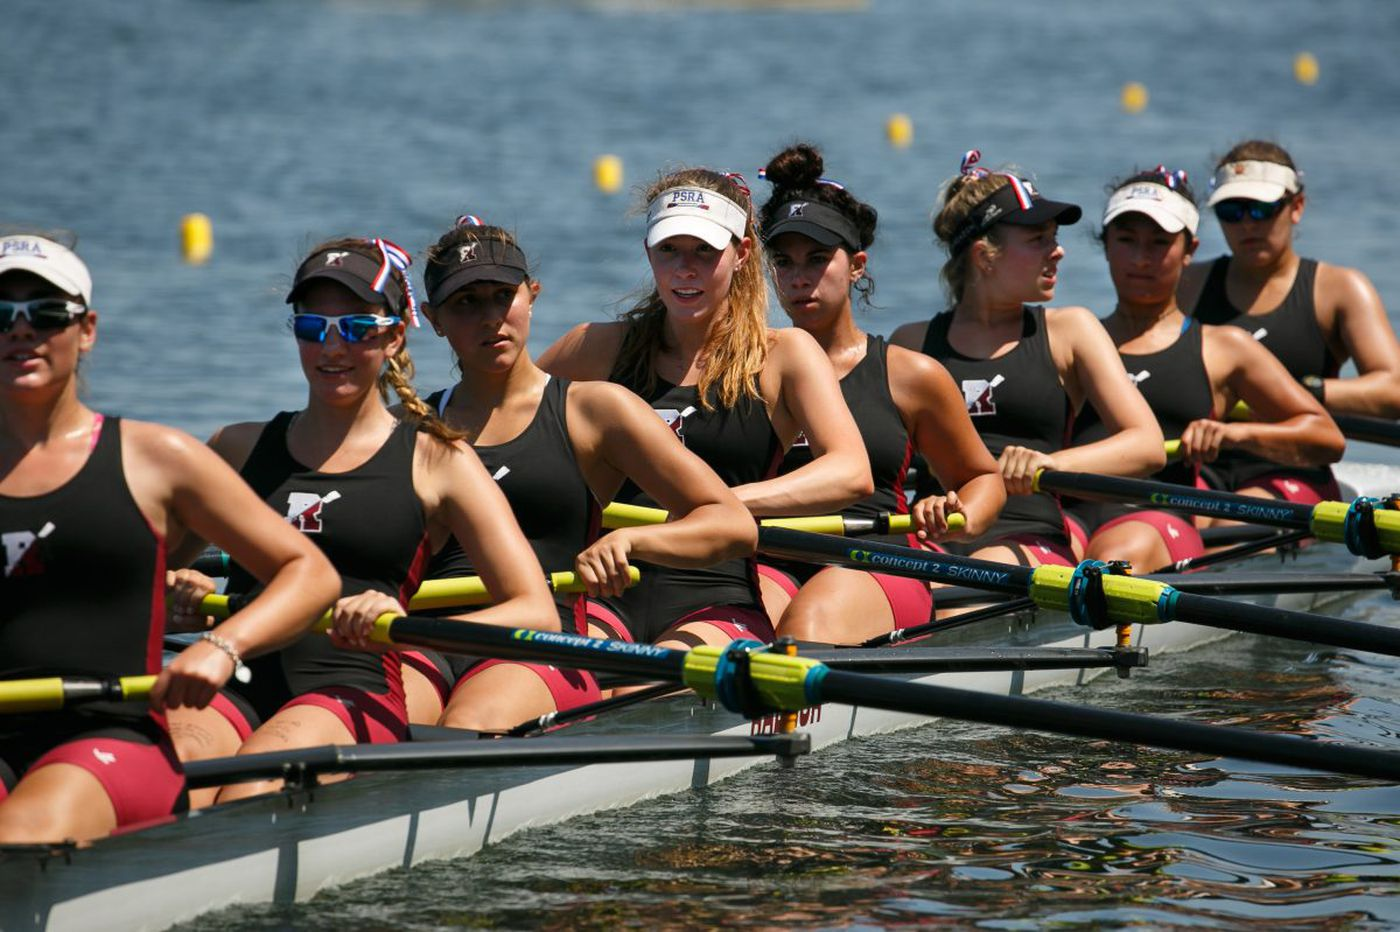 2018 Stotesbury Cup Regatta: What you need to know